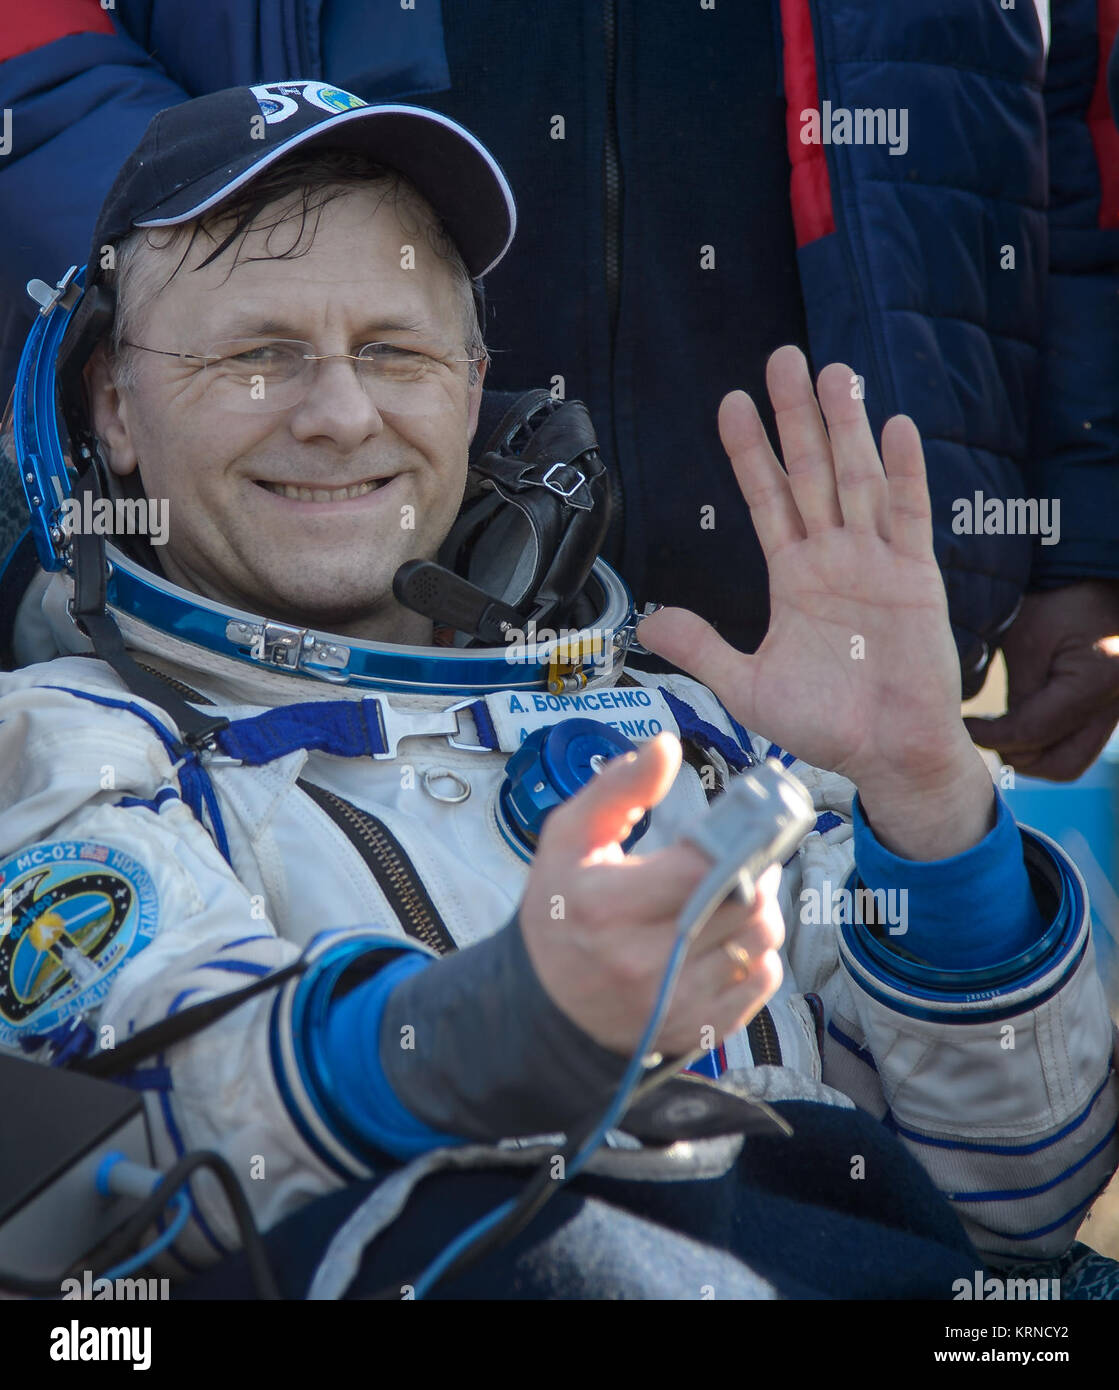 Russian cosmonaut Andrey Borisenko of Roscosmos rests in a chair outside the Soyuz MS-02 spacecraft just minutes - Stock Image